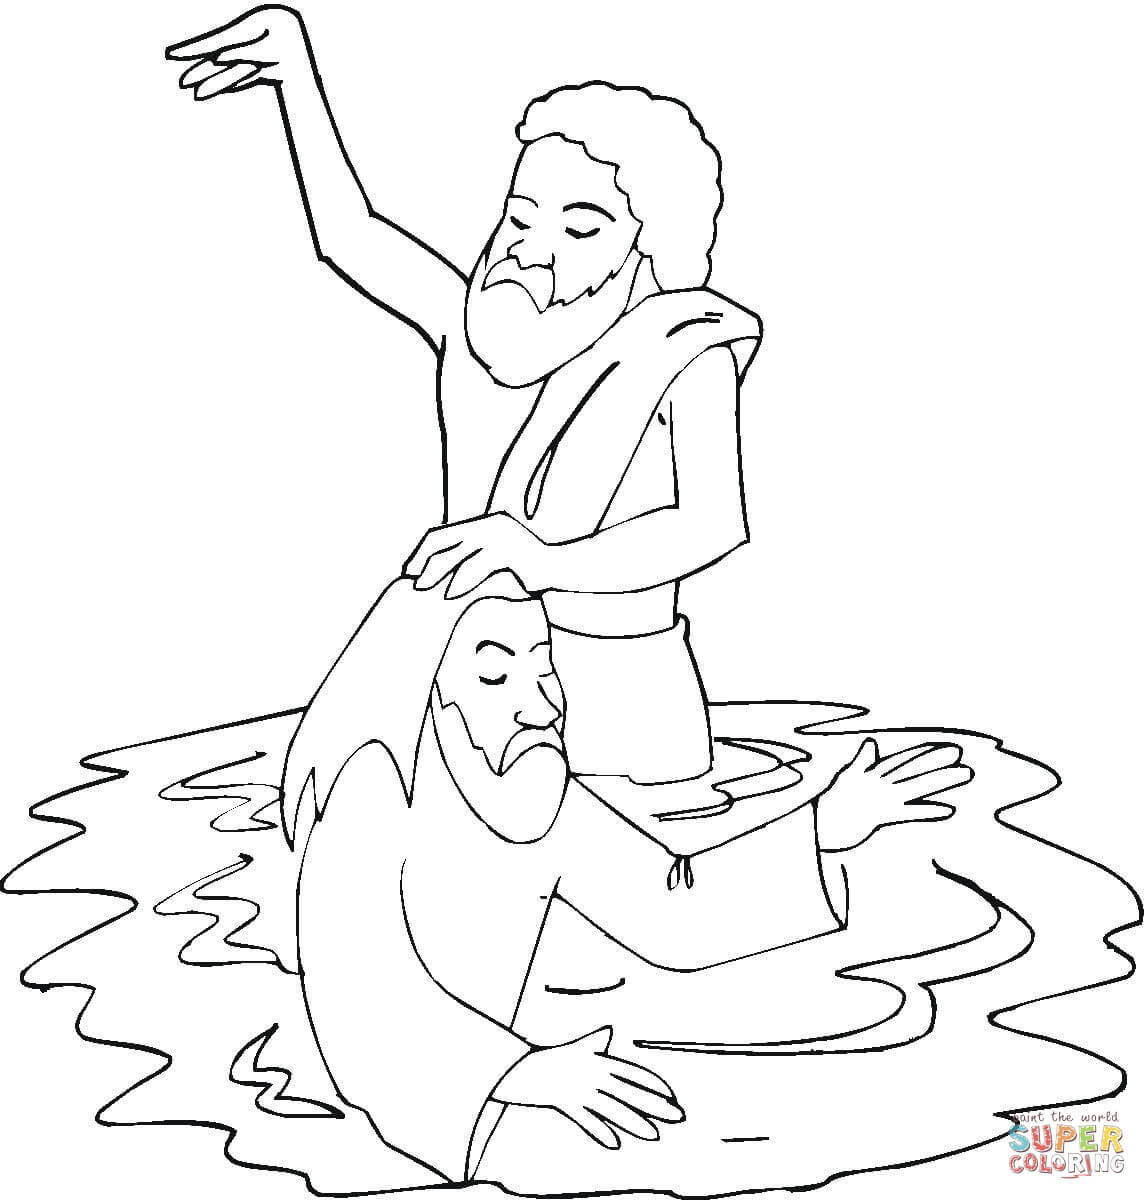 Baptism Of Jesus In River Jordan Coloring Page Gallery – Free ...